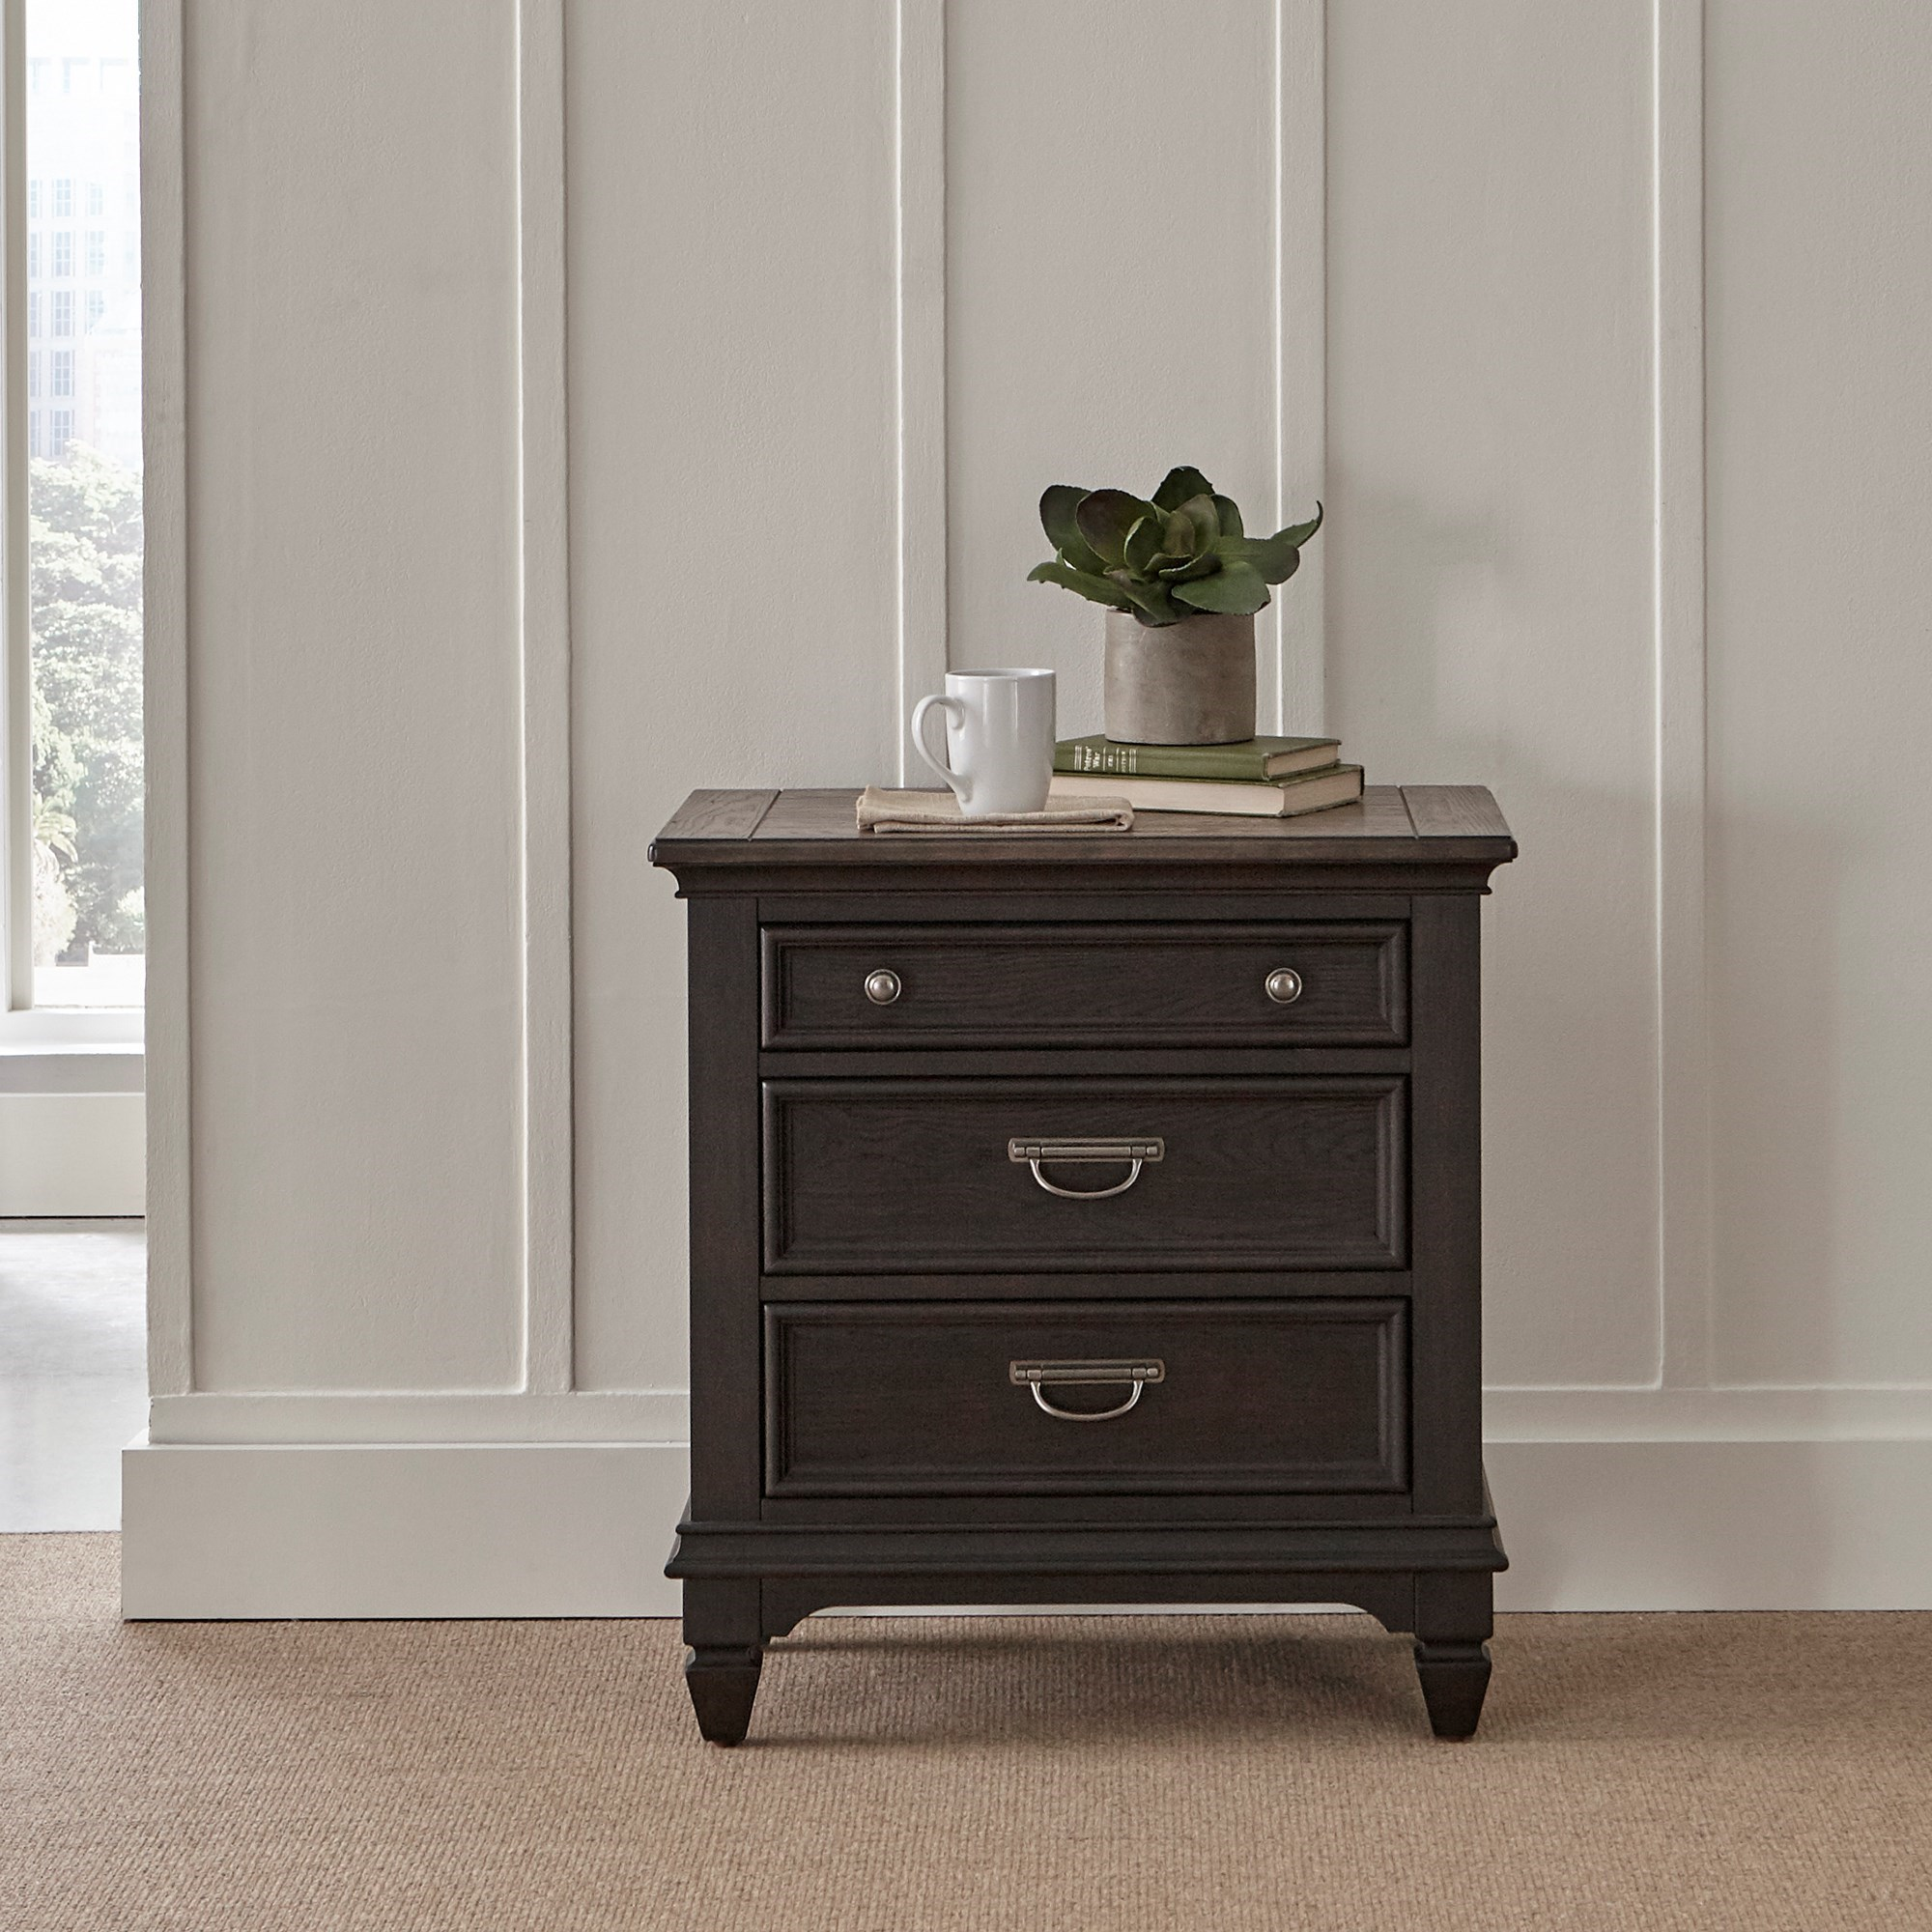 Allyson Park Nightstand by Liberty Furniture at Standard Furniture